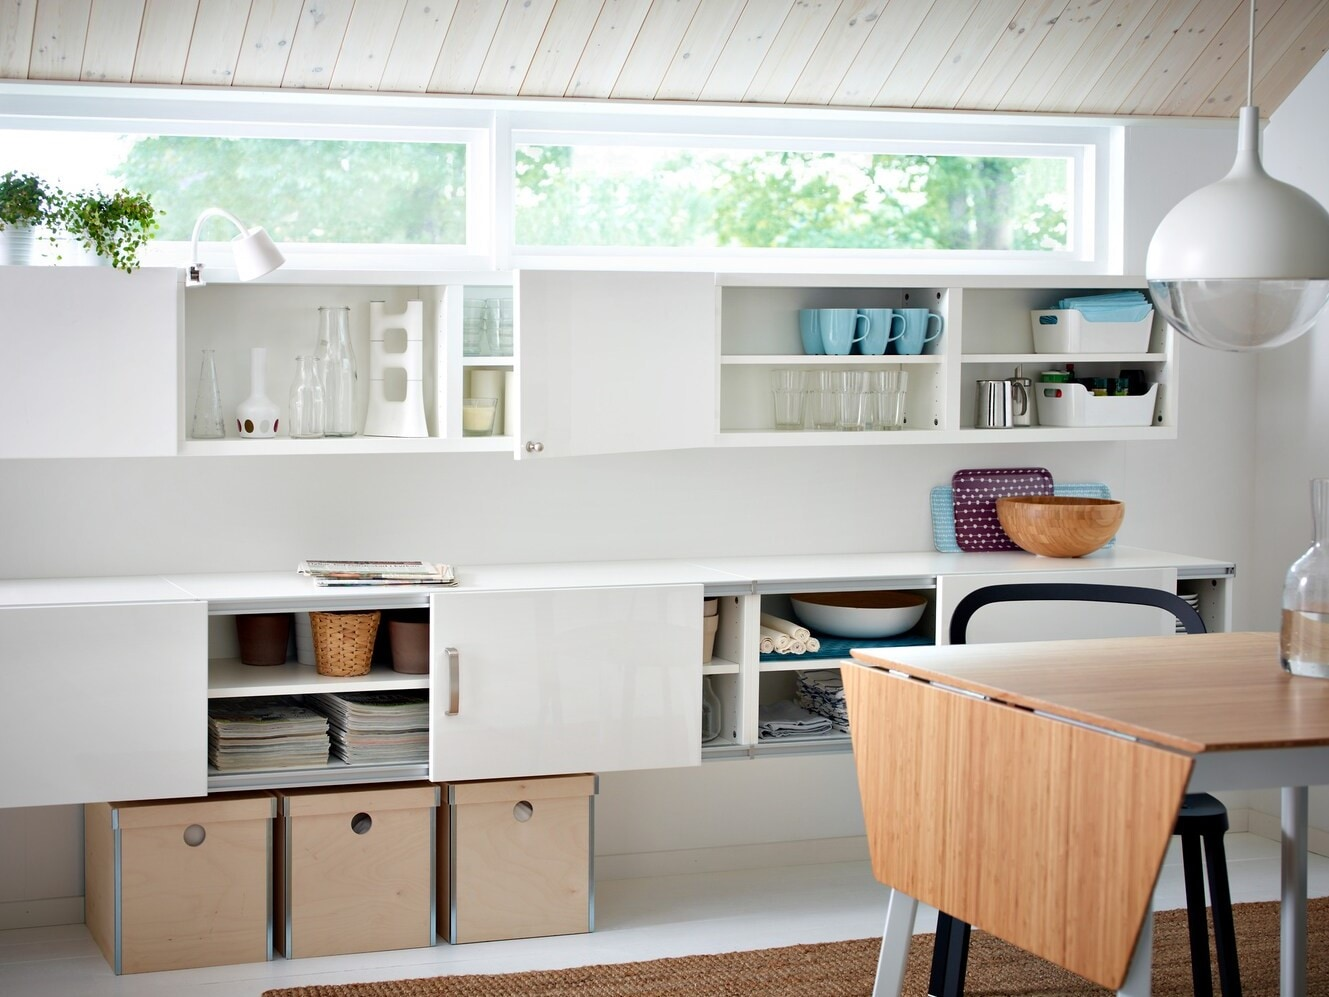 Small living room in pale tones